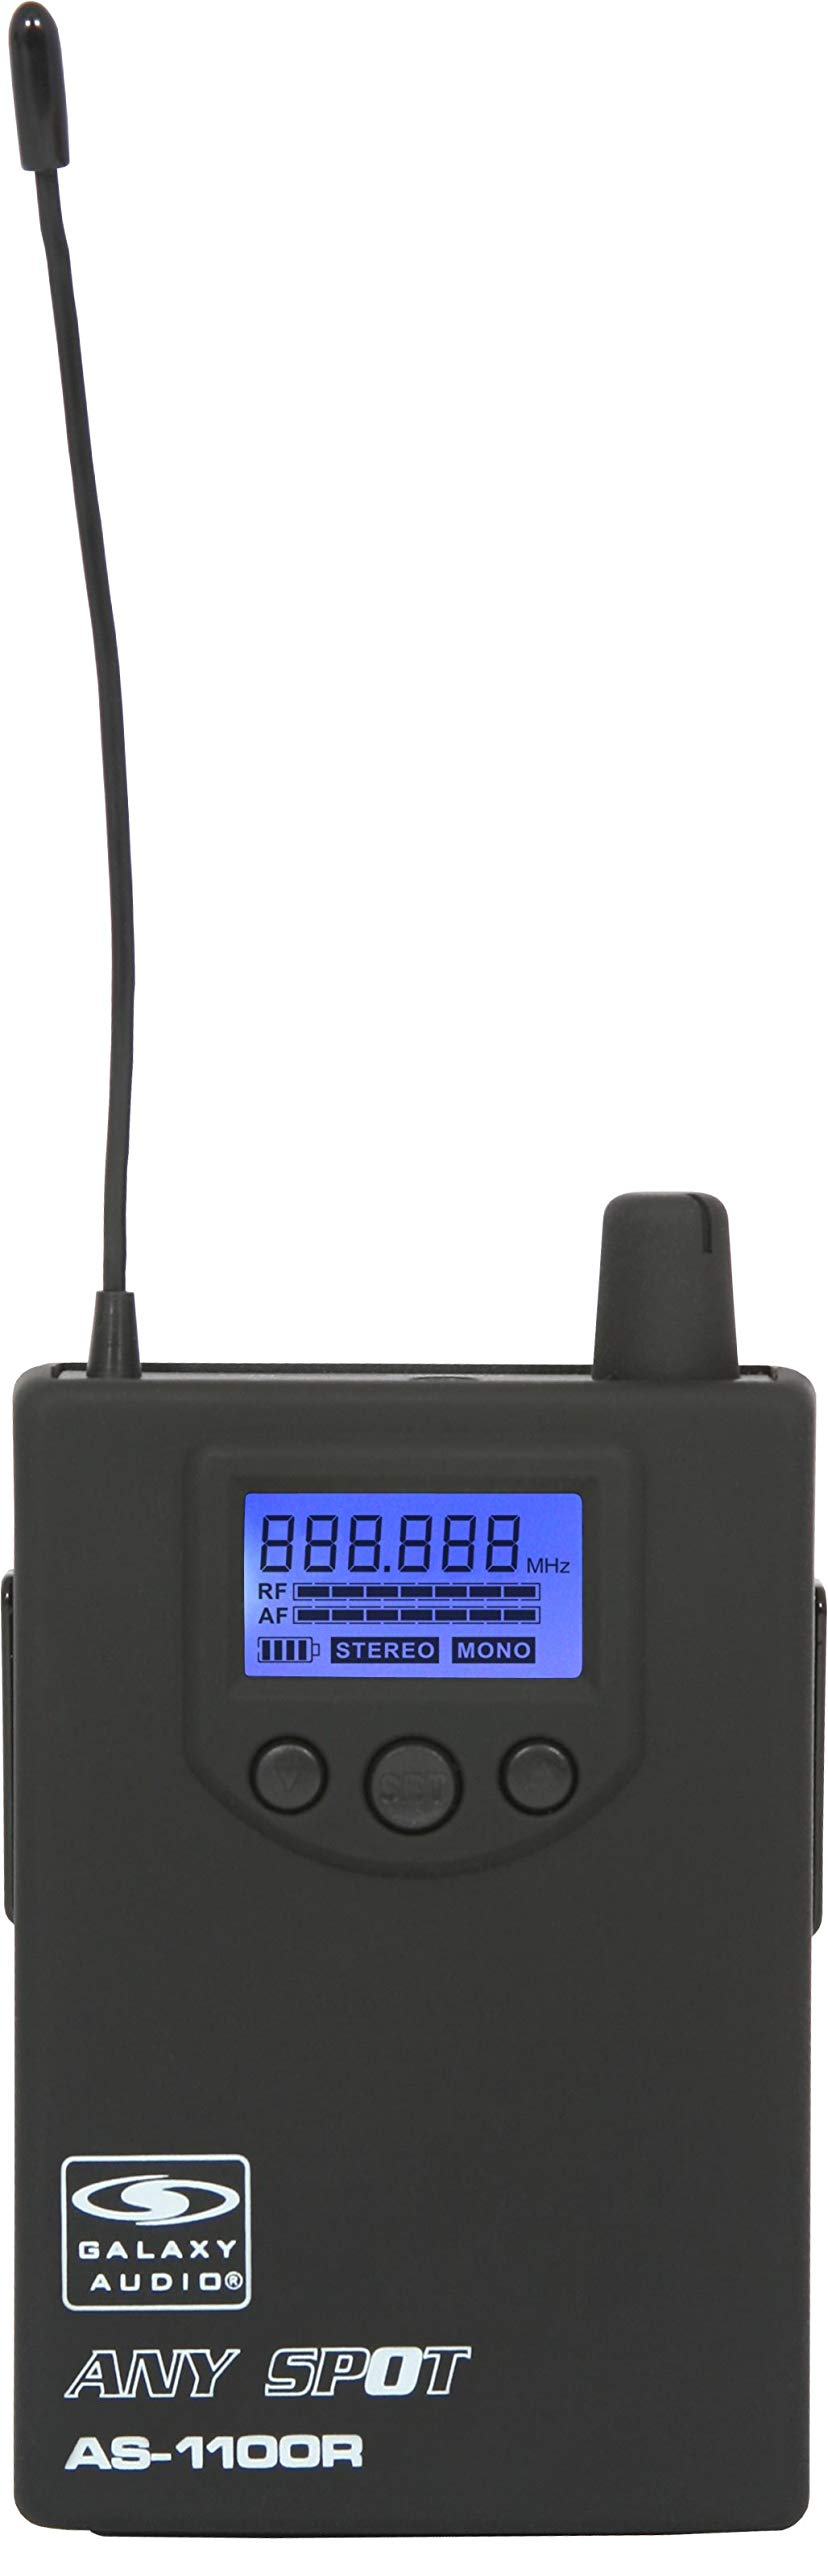 Galaxy Audio AS-1100R Wireless In-Ear Monitor Receiver, Code D (584 MHz - 607 MHz)